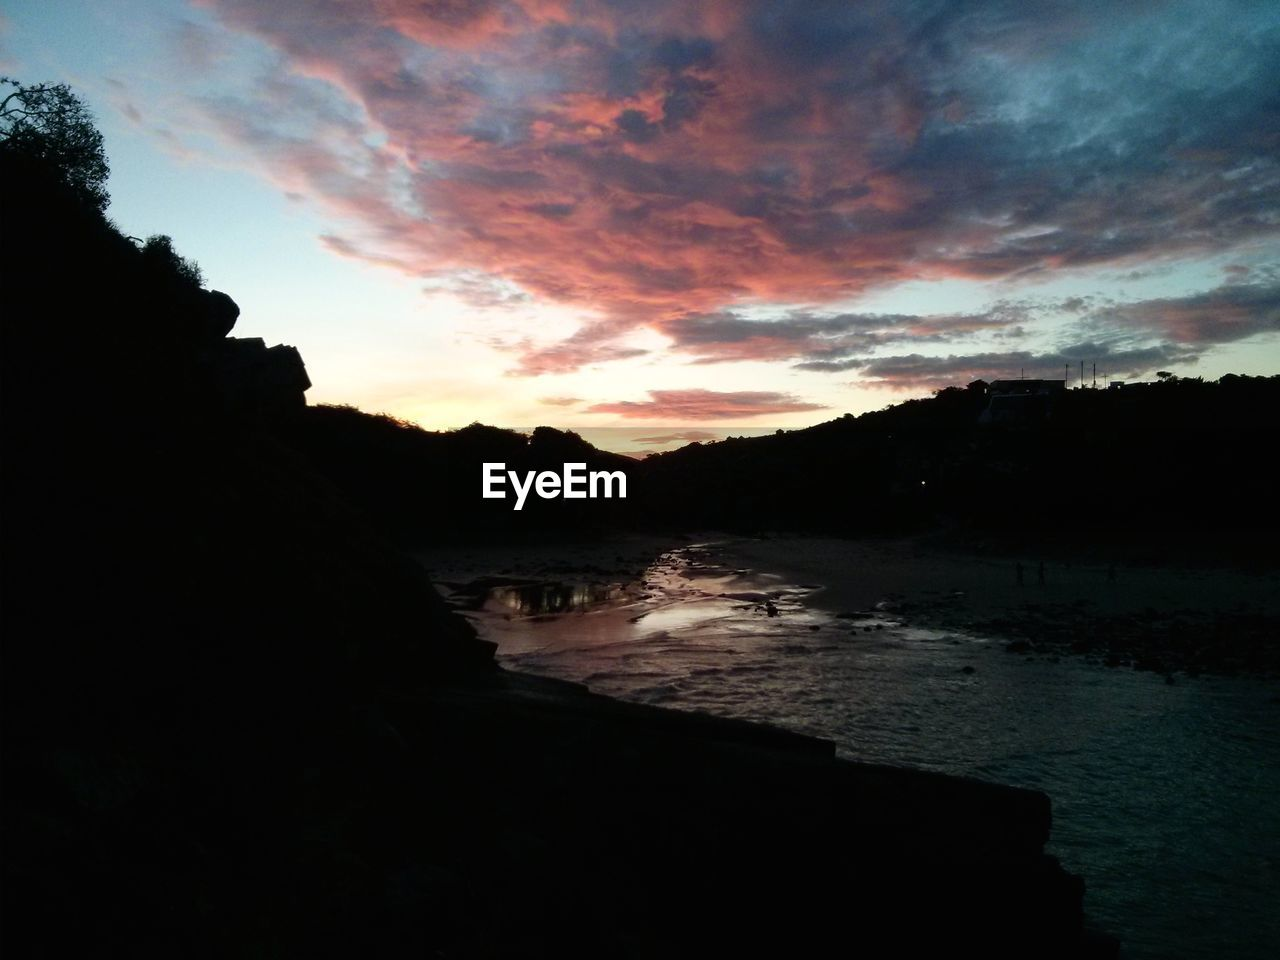 River Amidst Silhouette Mountains Against Cloudy Sky During Sunset